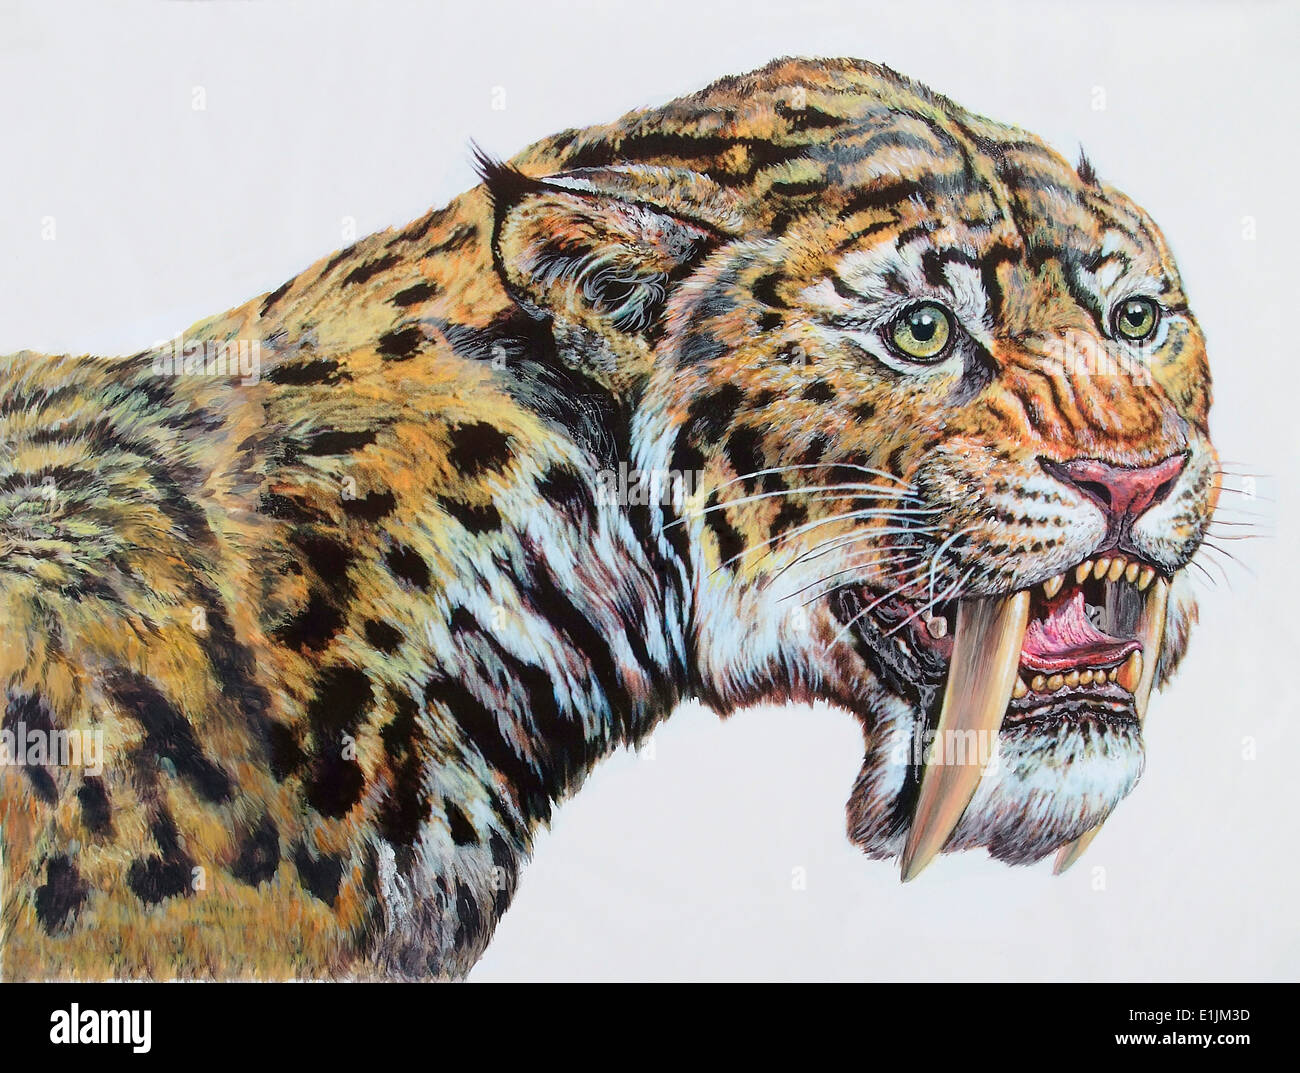 Close-up headshot of Megantereon (early sabertooth), Pliocene Epoch of Europe, Asia, and North America. - Stock Image